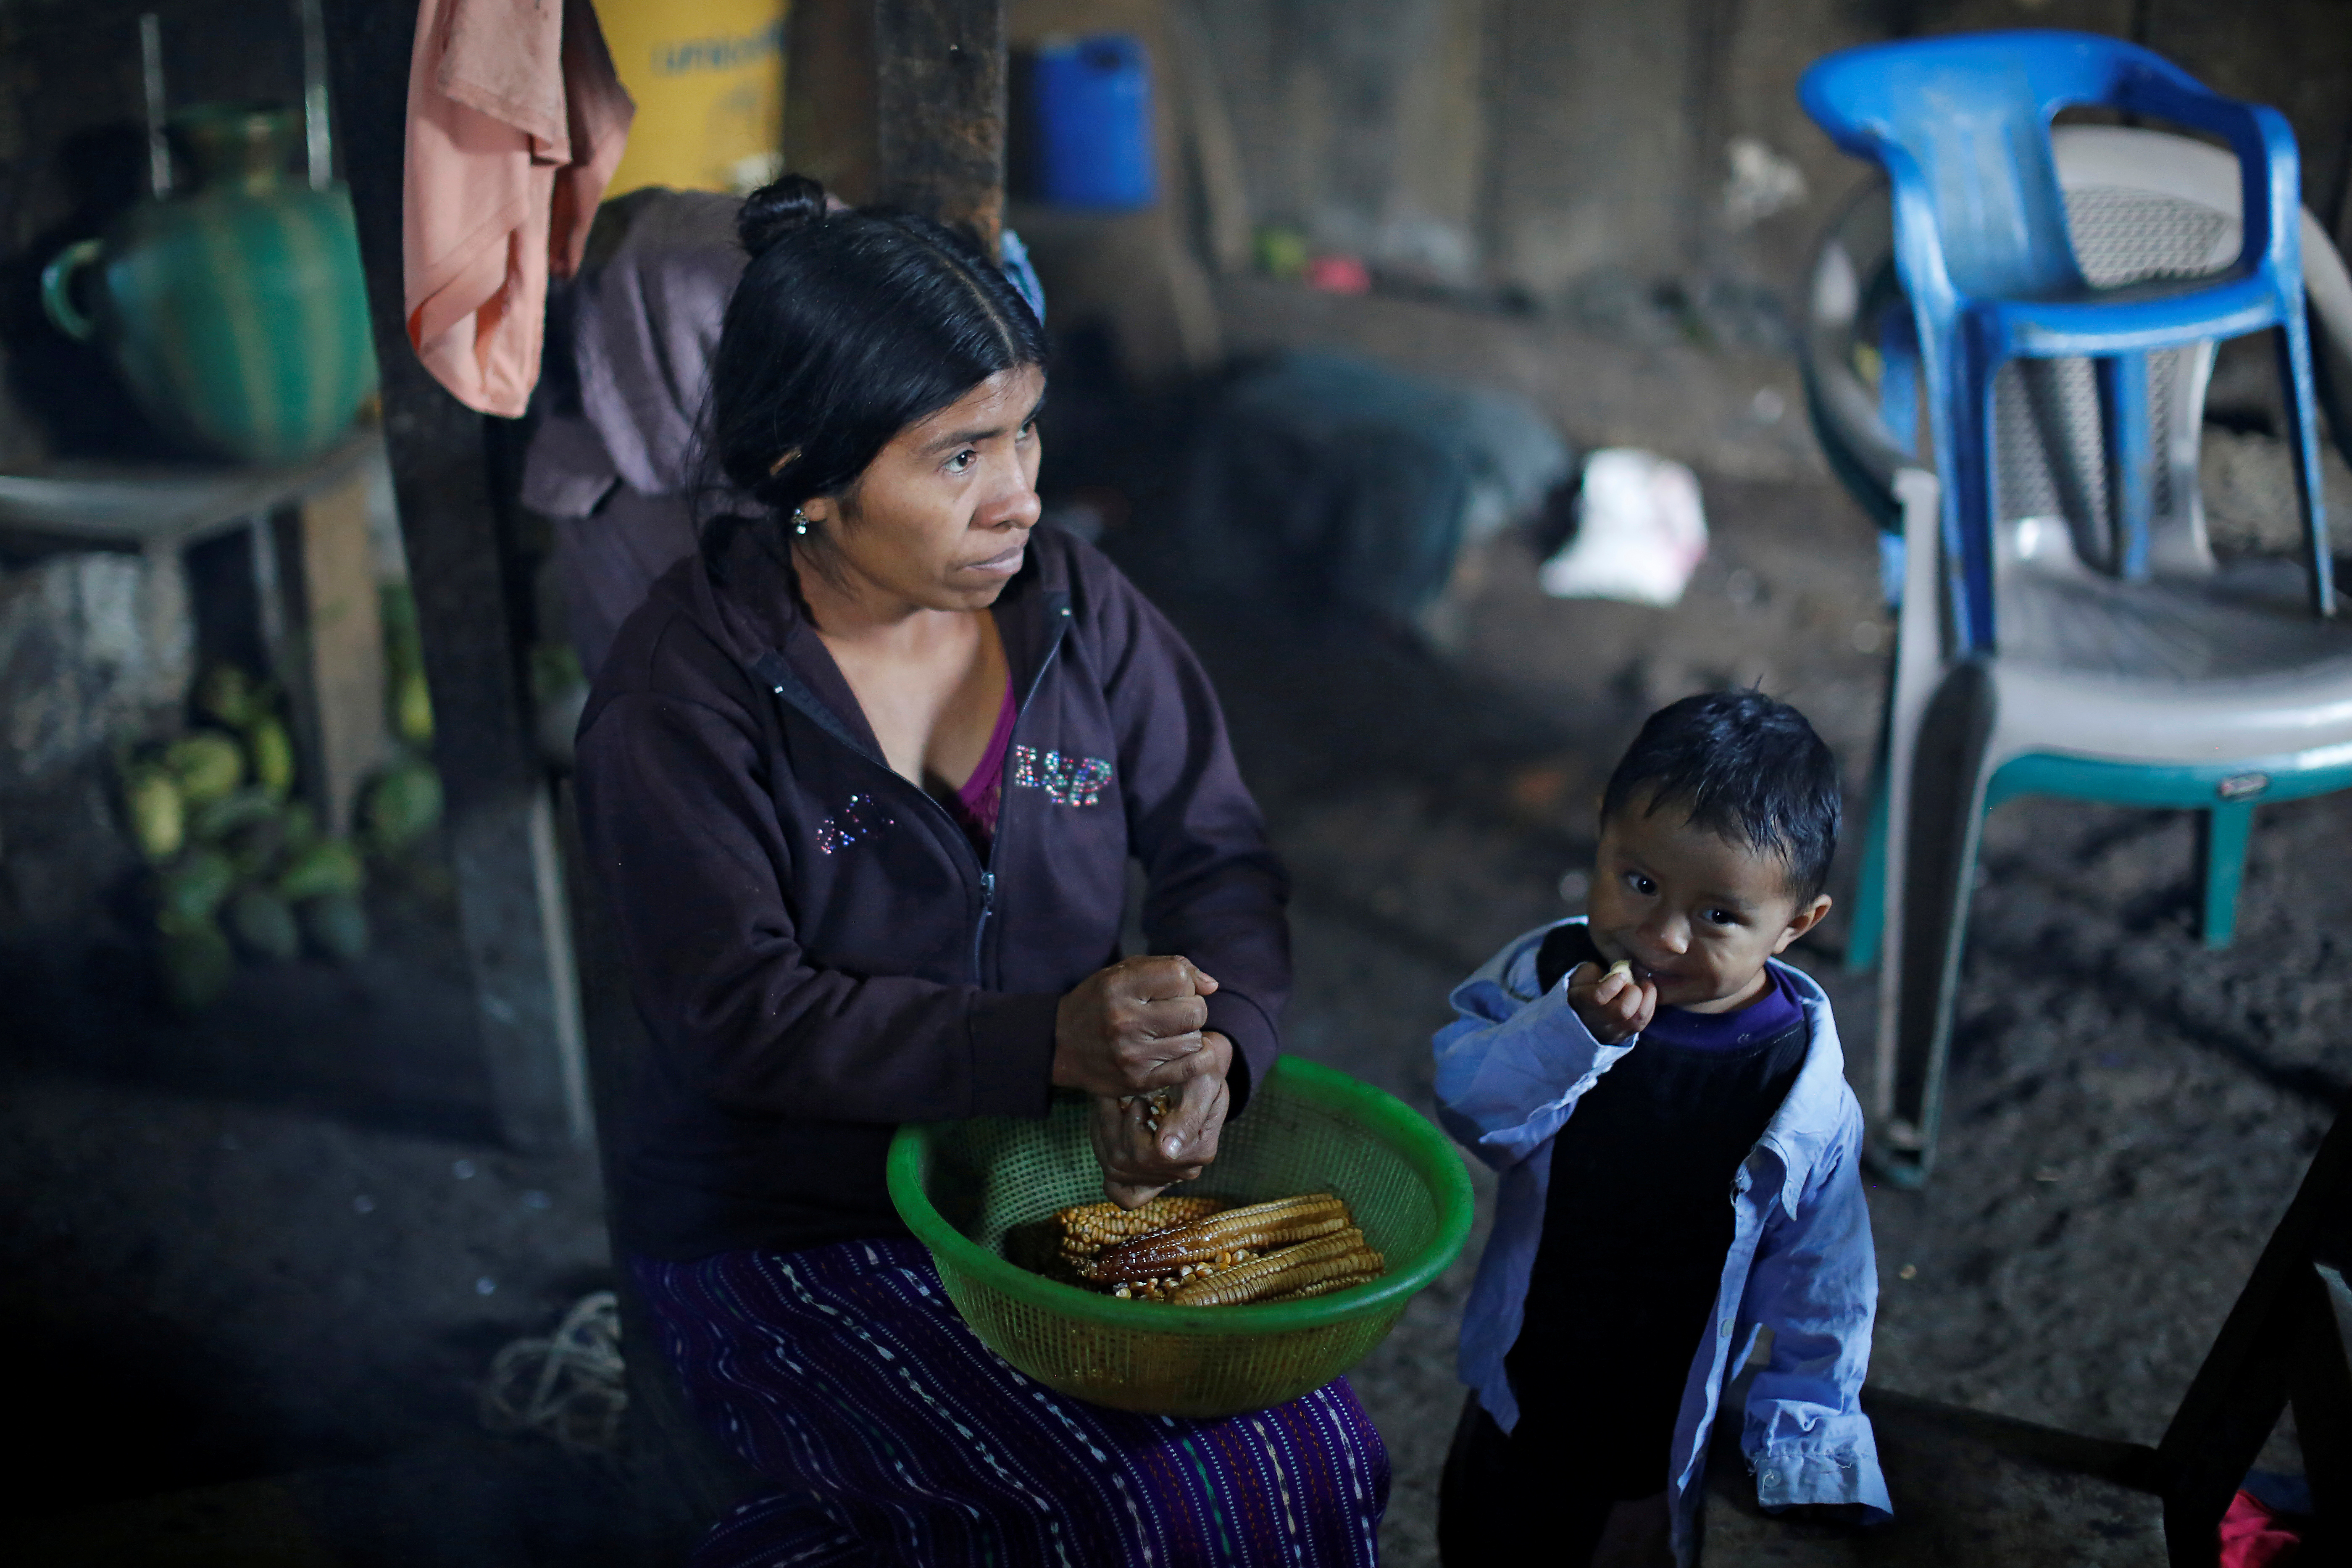 Catarina Alonzo, mother of Felipe Gomez Alonzo, a 8-year-old boy detained along his father for illegally entering the U.S., who fell ill and died in the custody of U.S. Customs and Border Protection (CBP), dekernels maize at her home in the village o...